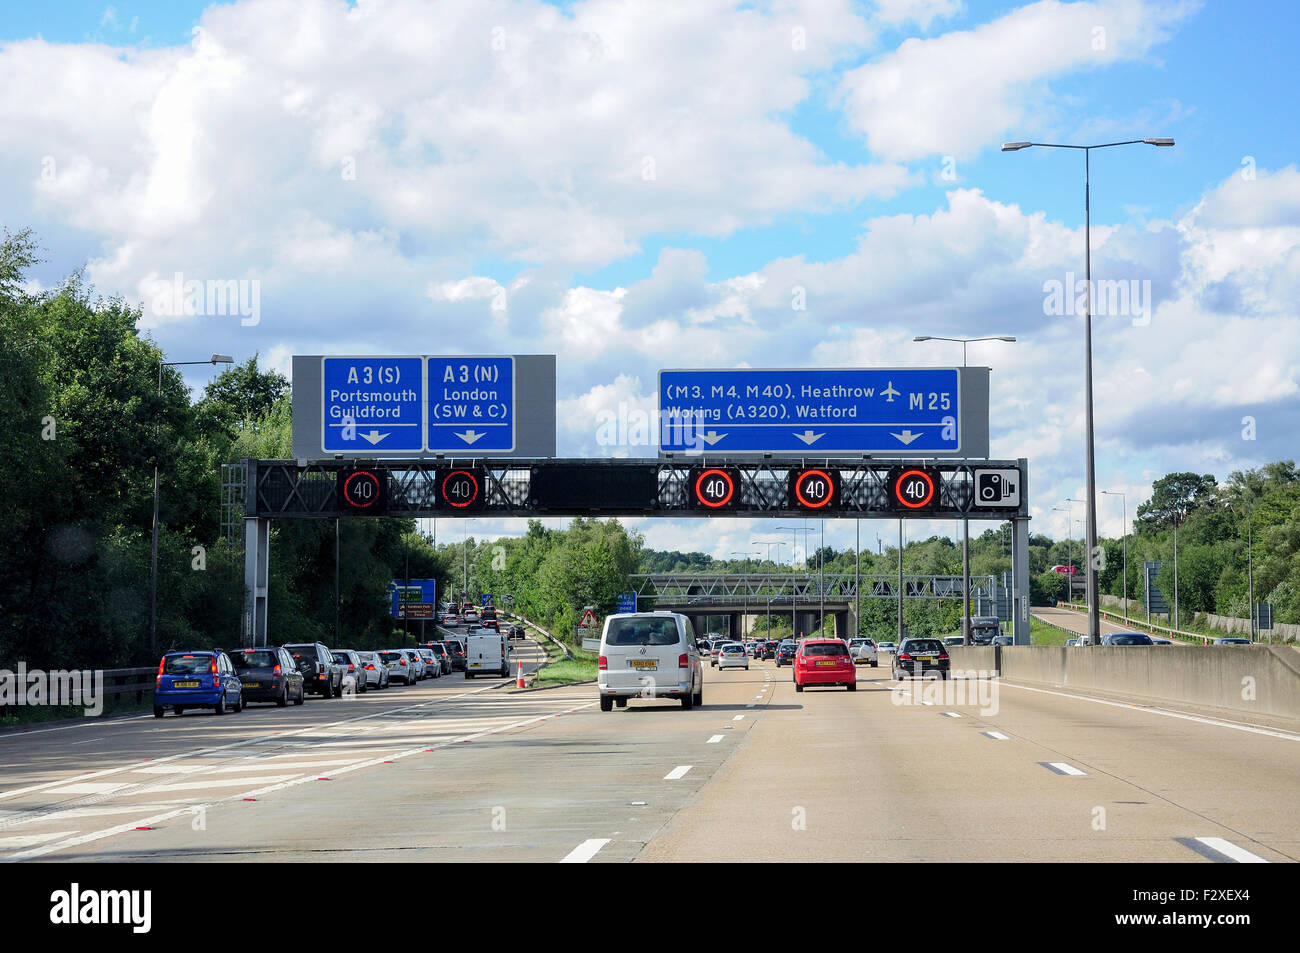 M25 at A3 Junction, Surrey, England, United Kingdom - Stock Image